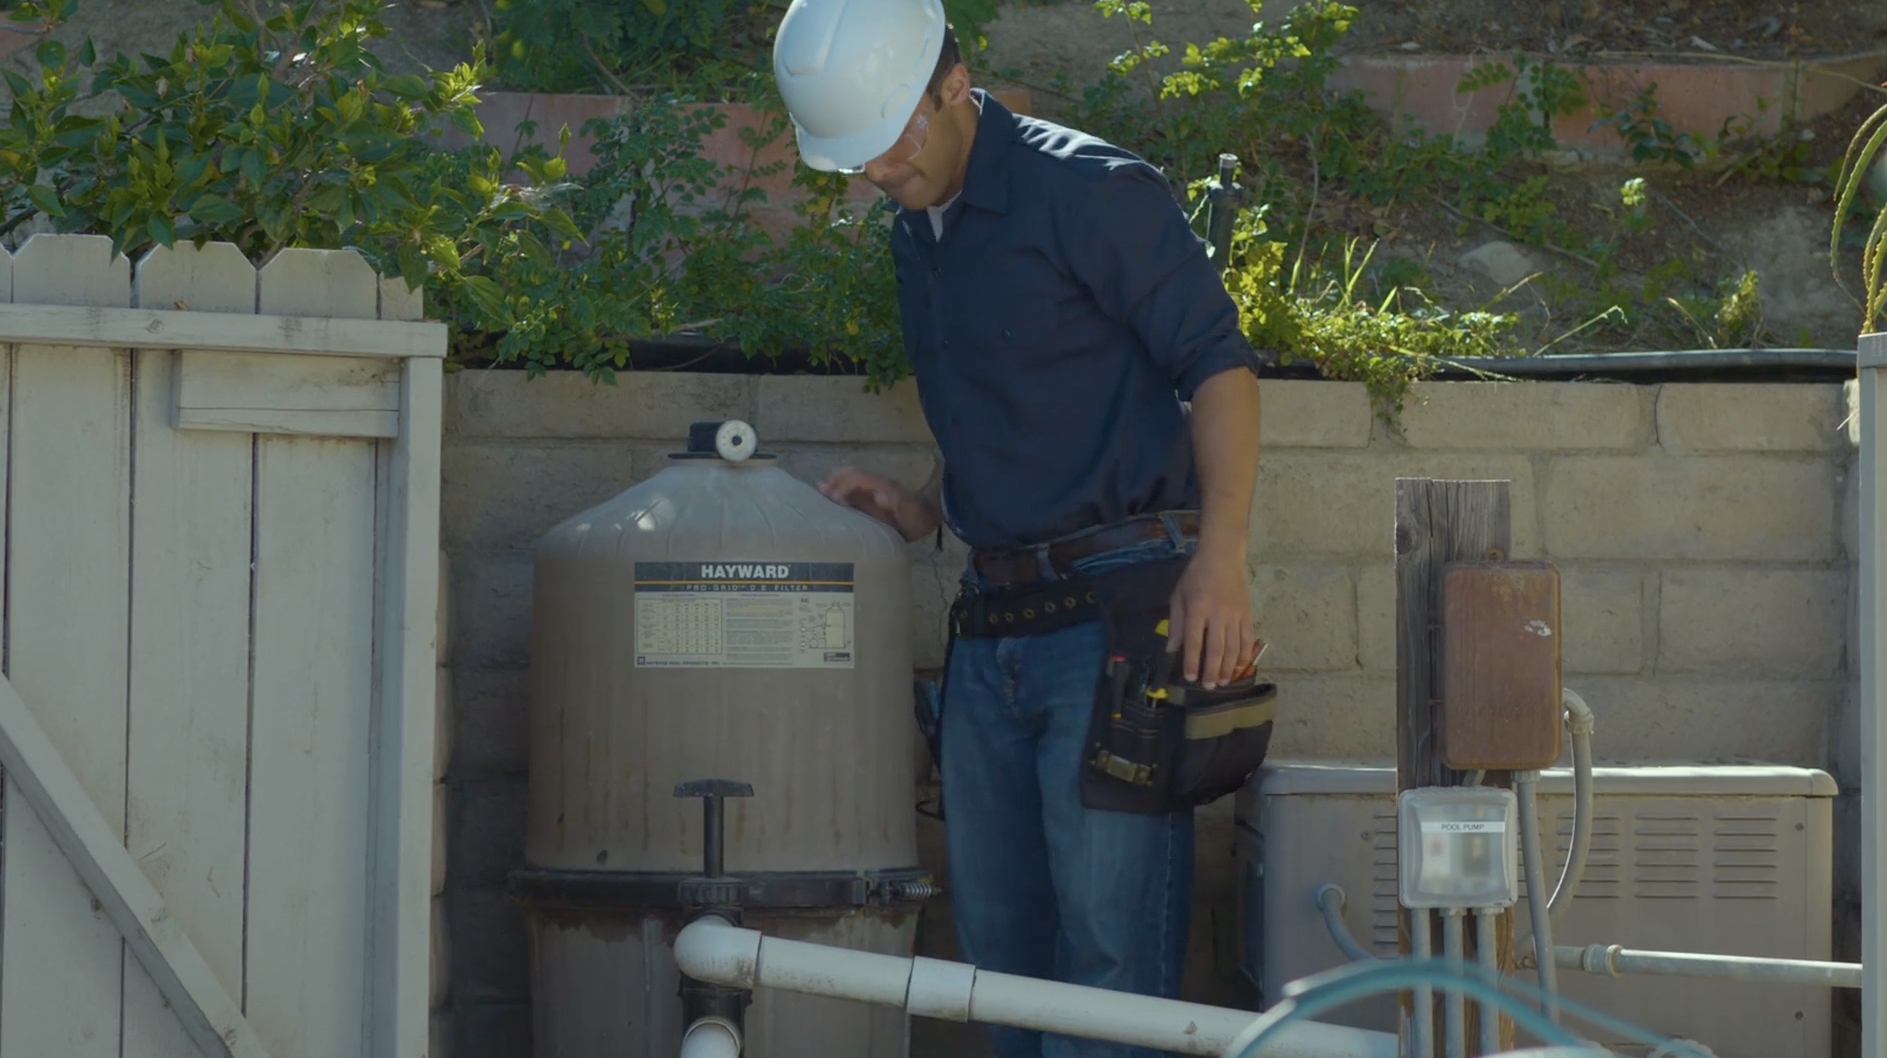 Licensed electricians and pool contractors can spot and fix problems like faulty pool lighting, faulty or nonexistent ground fault circuit interrupters and incorrect wiring and bonding.